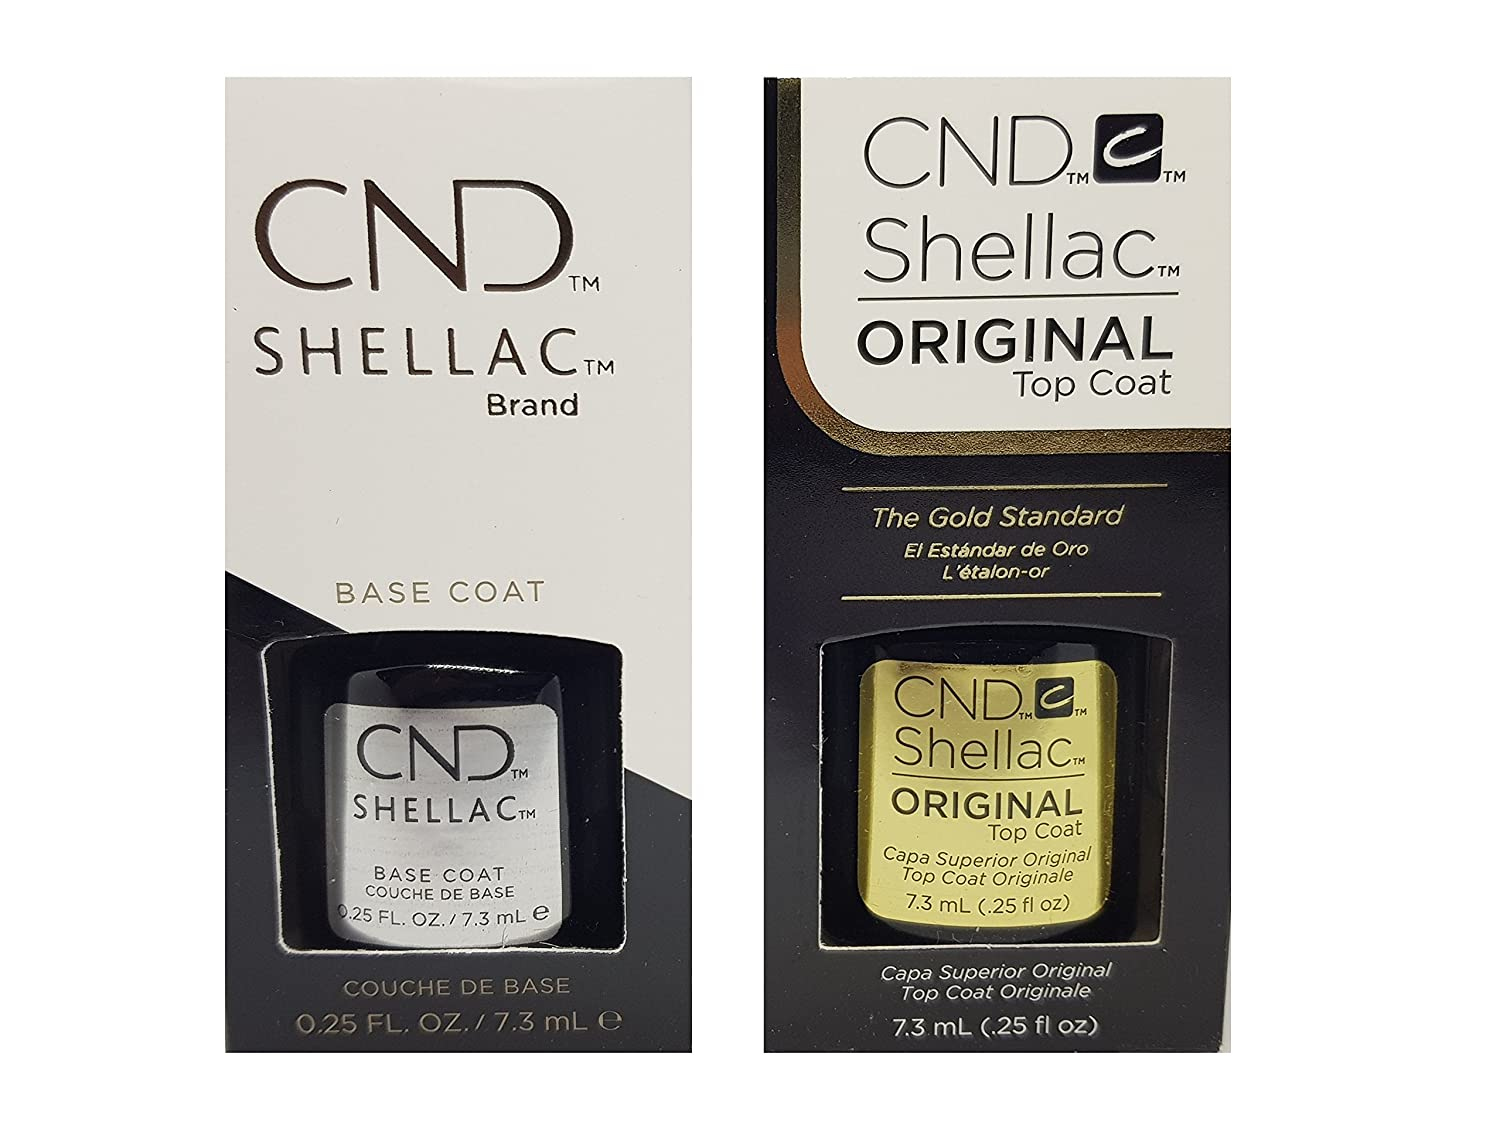 Cnd Shellac Top/Base Esmalte Gel - 1 Paquete de 2 x 7.3 ml - Total: 14.6 ml CNDNEWCAT78